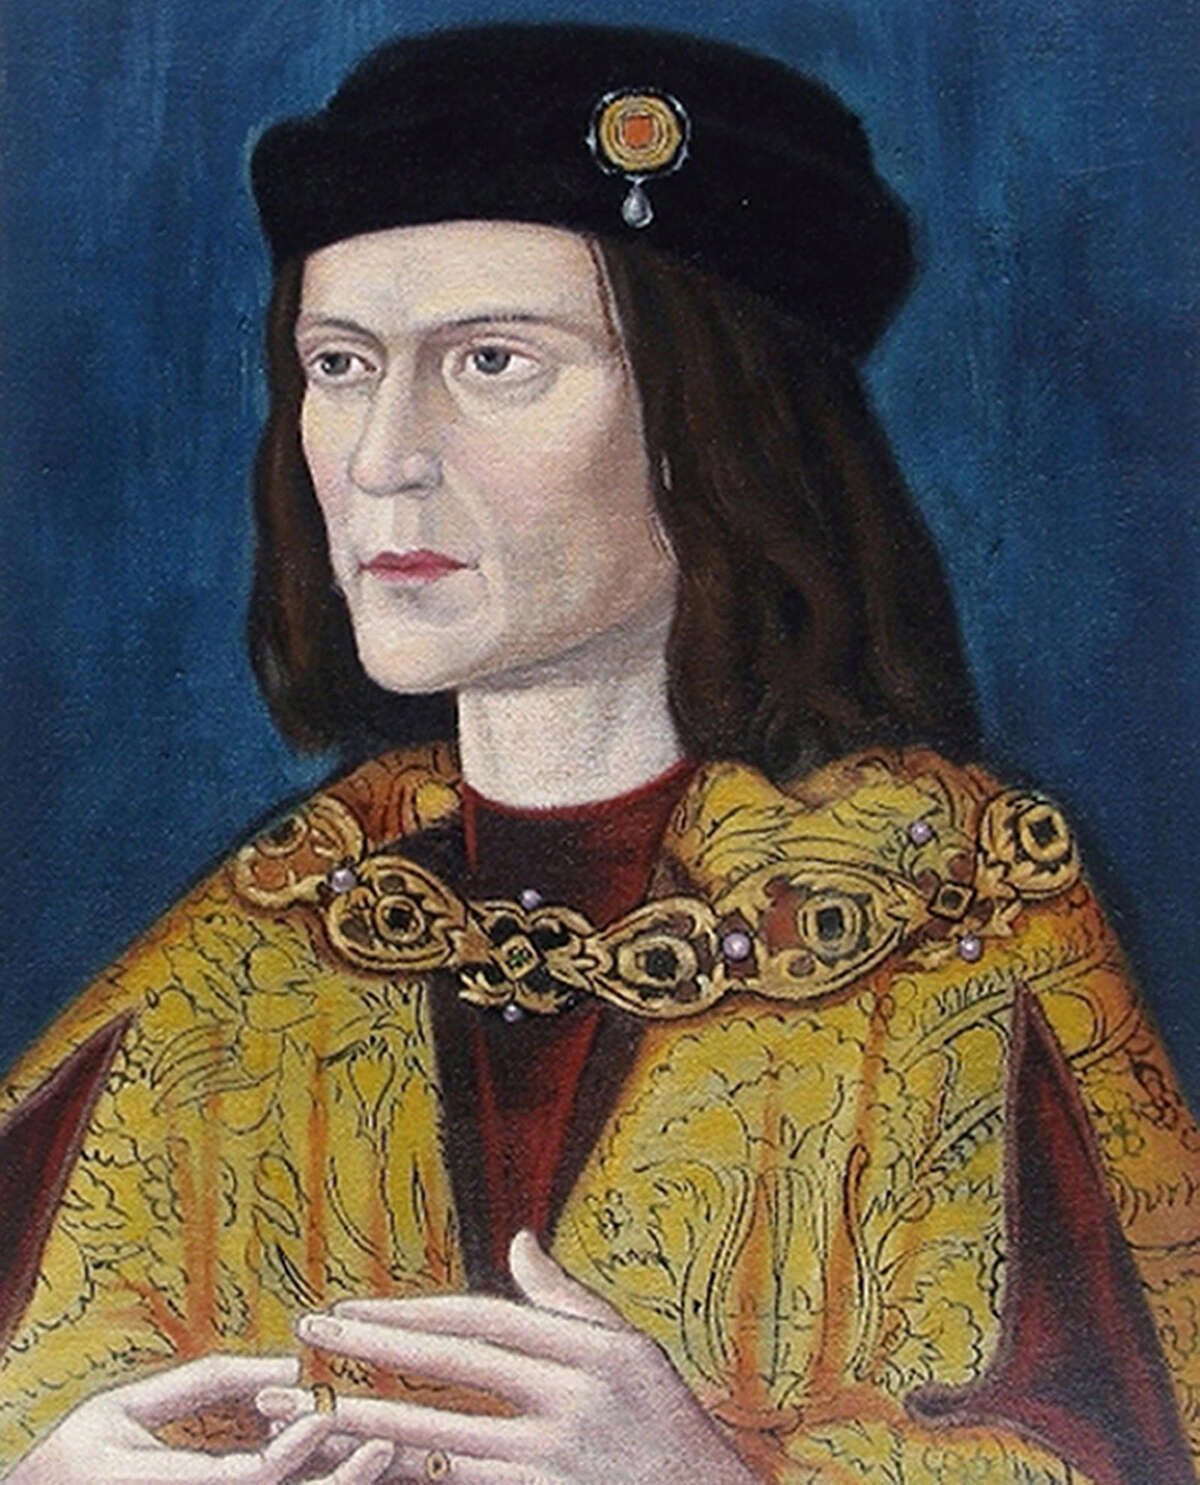 This is a photo of the earliest surviving portrait of Richard III in Leicester Cathedral. In early February, British scientists used DNA testing to confirm that unearthed remains beneath a parking lot did in fact belong to the medieval king. Related: Court battle over Richard III reburial adjourned